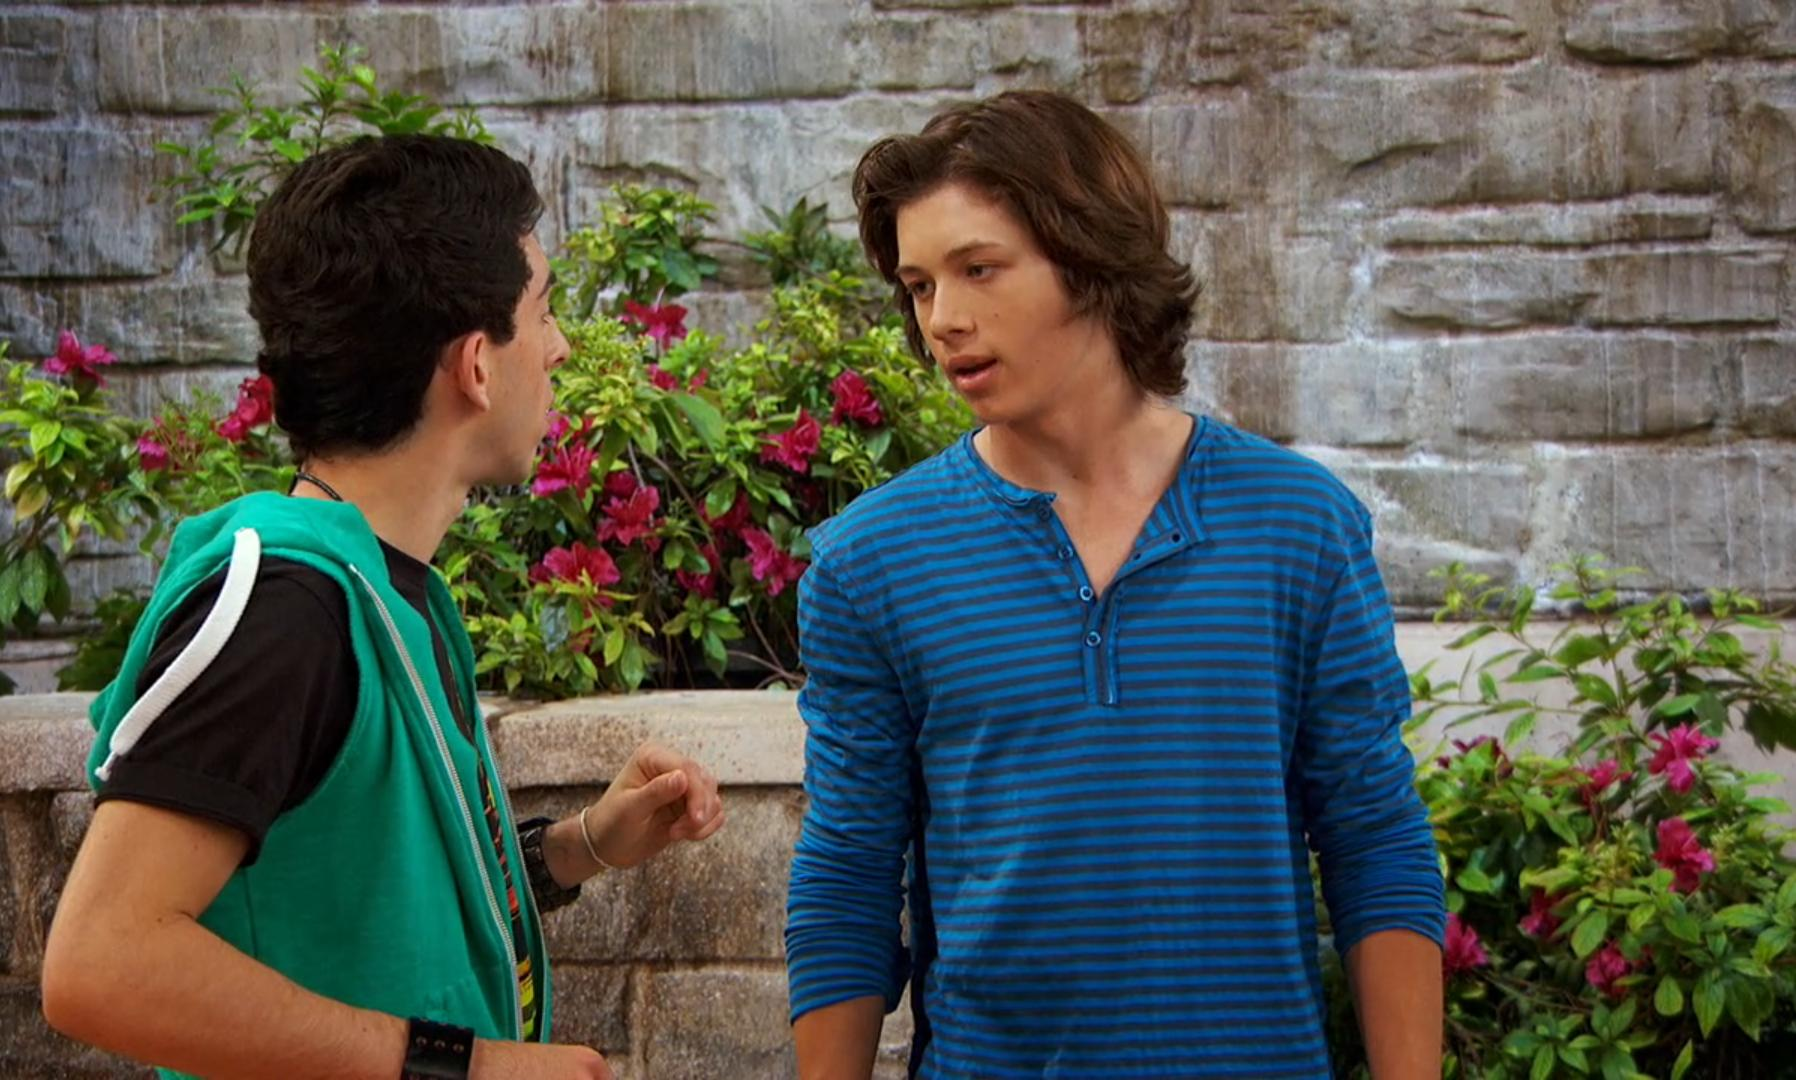 leo howard 2012leo howard instagram, leo howard 2016, leo howard height, leo howard karate, leo howard and liza koshy, leo howard muscle, leo howard movies, leo howard new show, leo howard 2012, leo howard and olivia holt, leo howard 2017, leo howard twitter, leo howard facebook, leo howard daughter, leo howard life, leo howard wikipedia, leo howard singing, leo howard in shake it up, leo howard fan, leo howard filmography